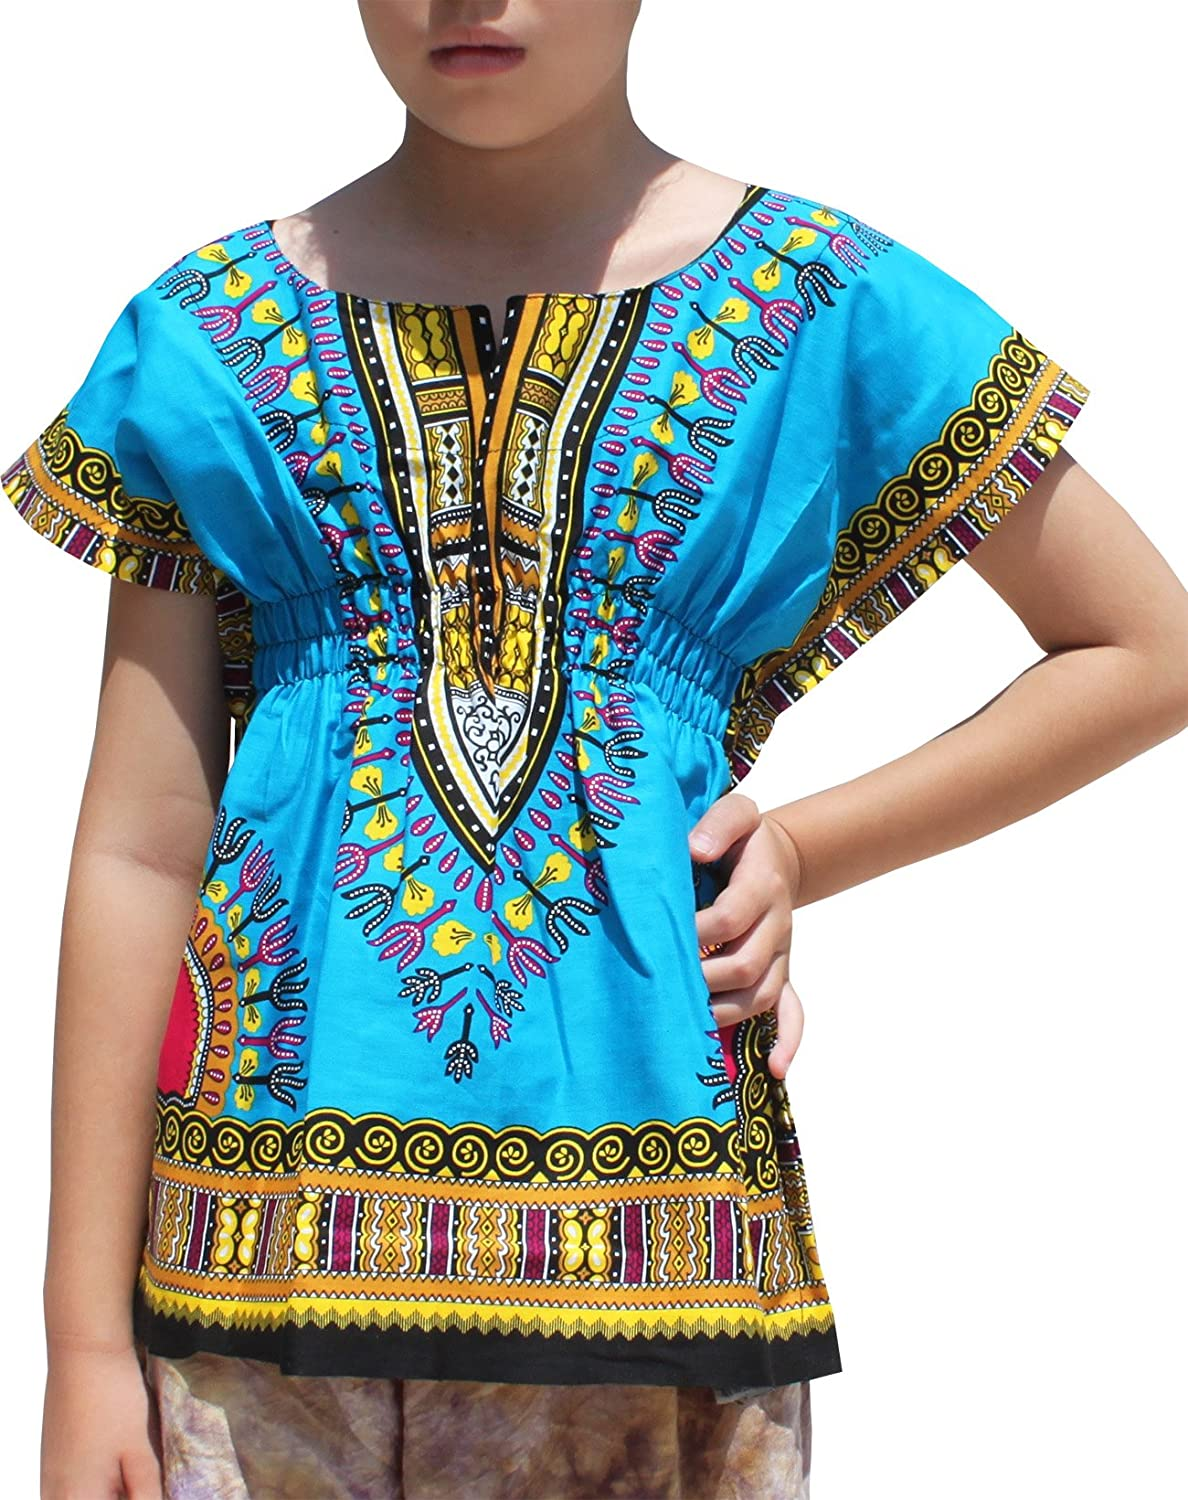 RaanPahMuang Childs African Dashiki Festival Bright Cotton Open Collar Shirt CA_AMZvariant17900MDL